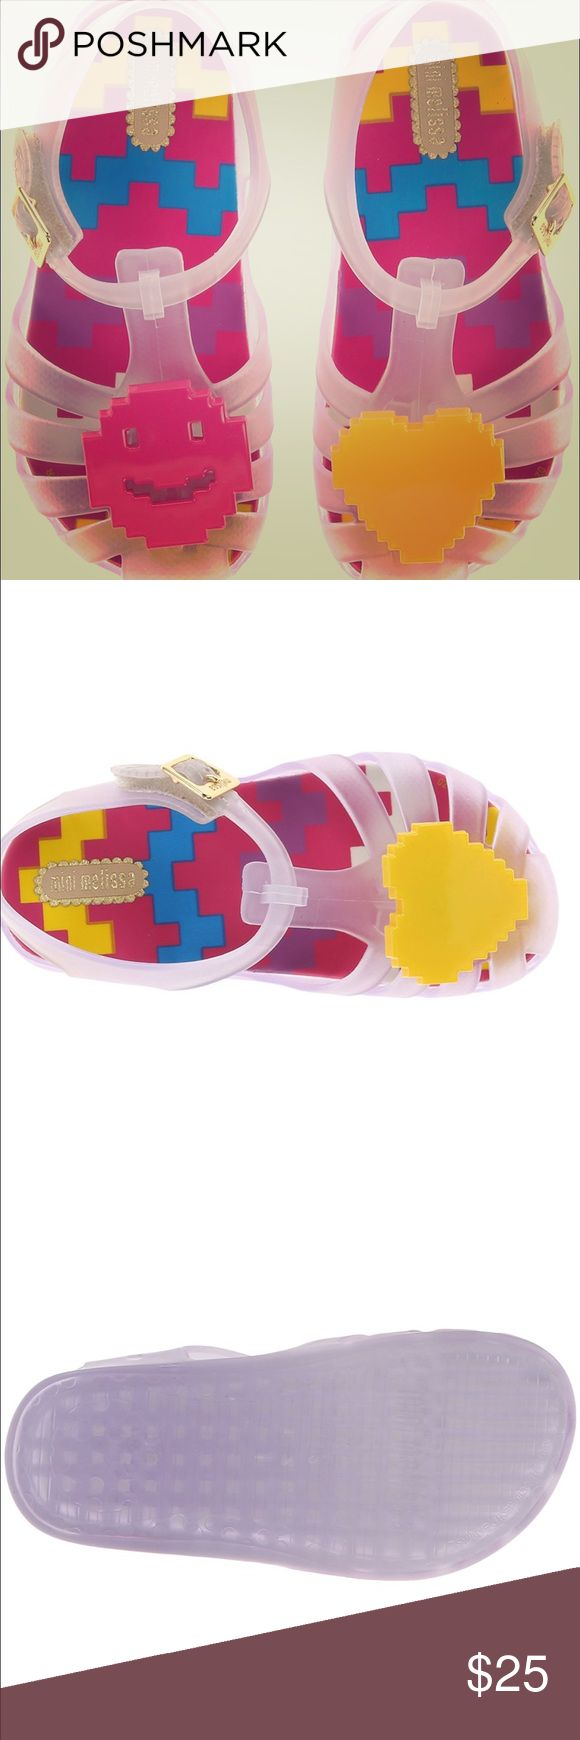 Mini Melissa sandals! Adorable sandals worn once! These are so stylish! Comes with mini Melissa box and dust bag. Size 7 Mini Melissa Shoes Sandals & Flip Flops